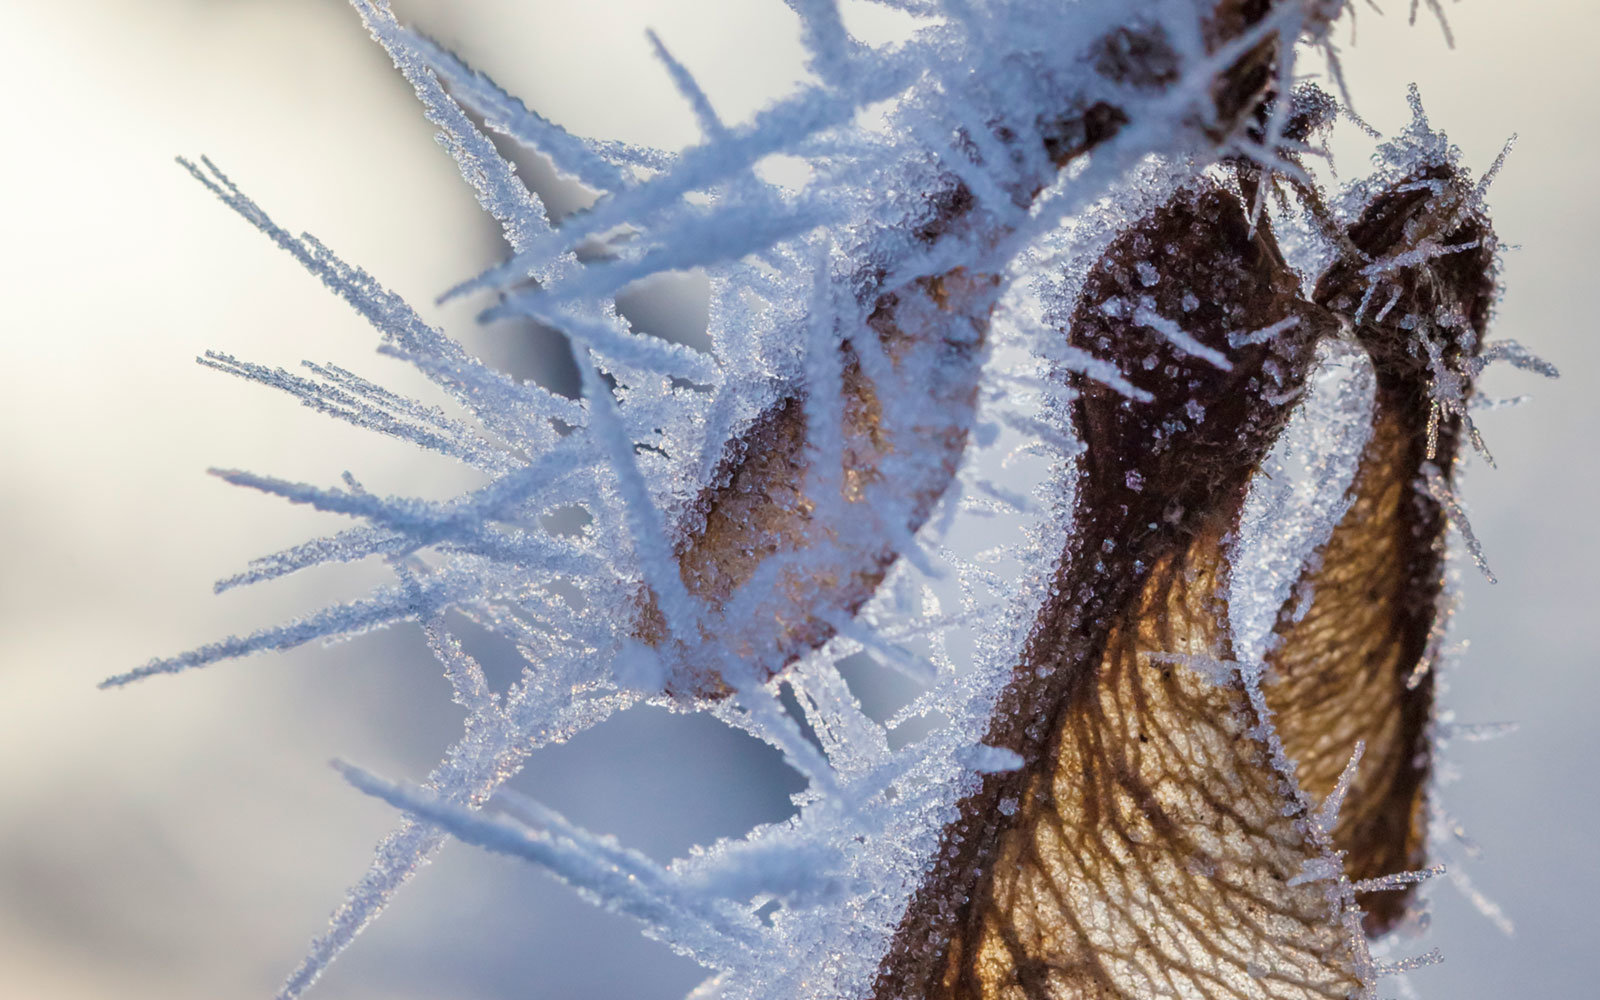 Sycamore Seed Coated in Hoar Frost, Peak District National Park, UK